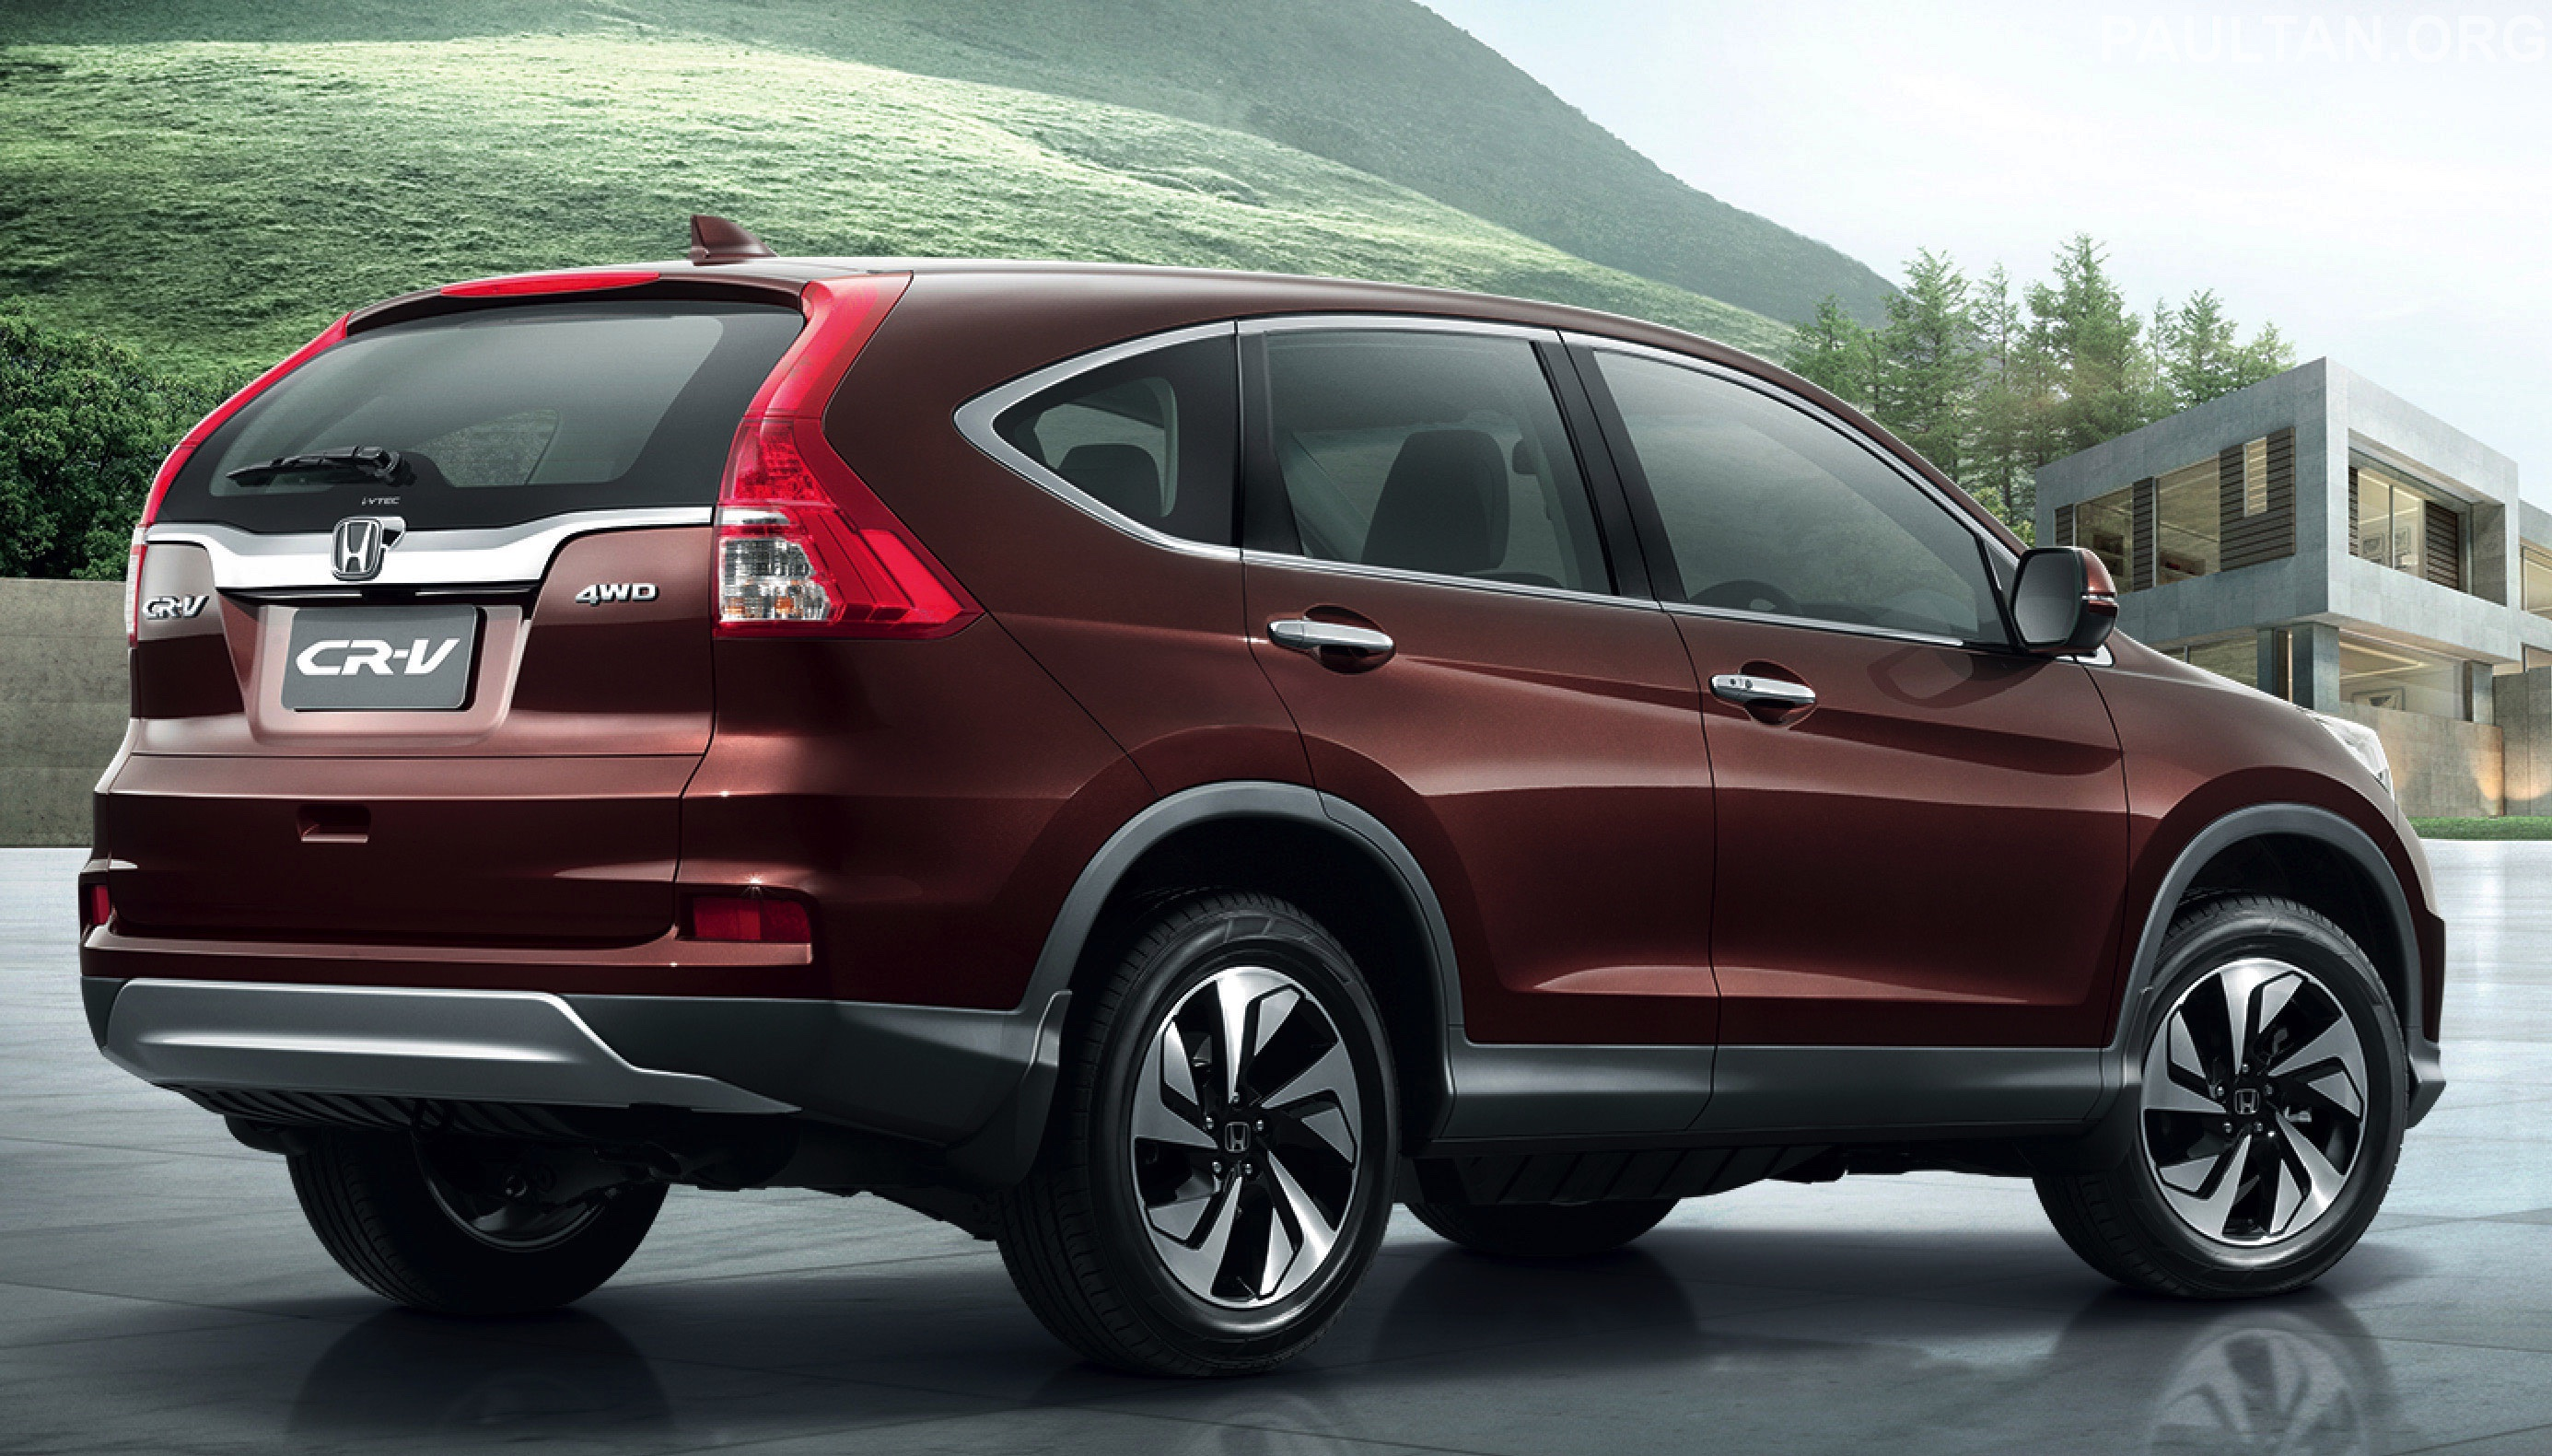 crv is and v dow the between difference for honda what cr comparison